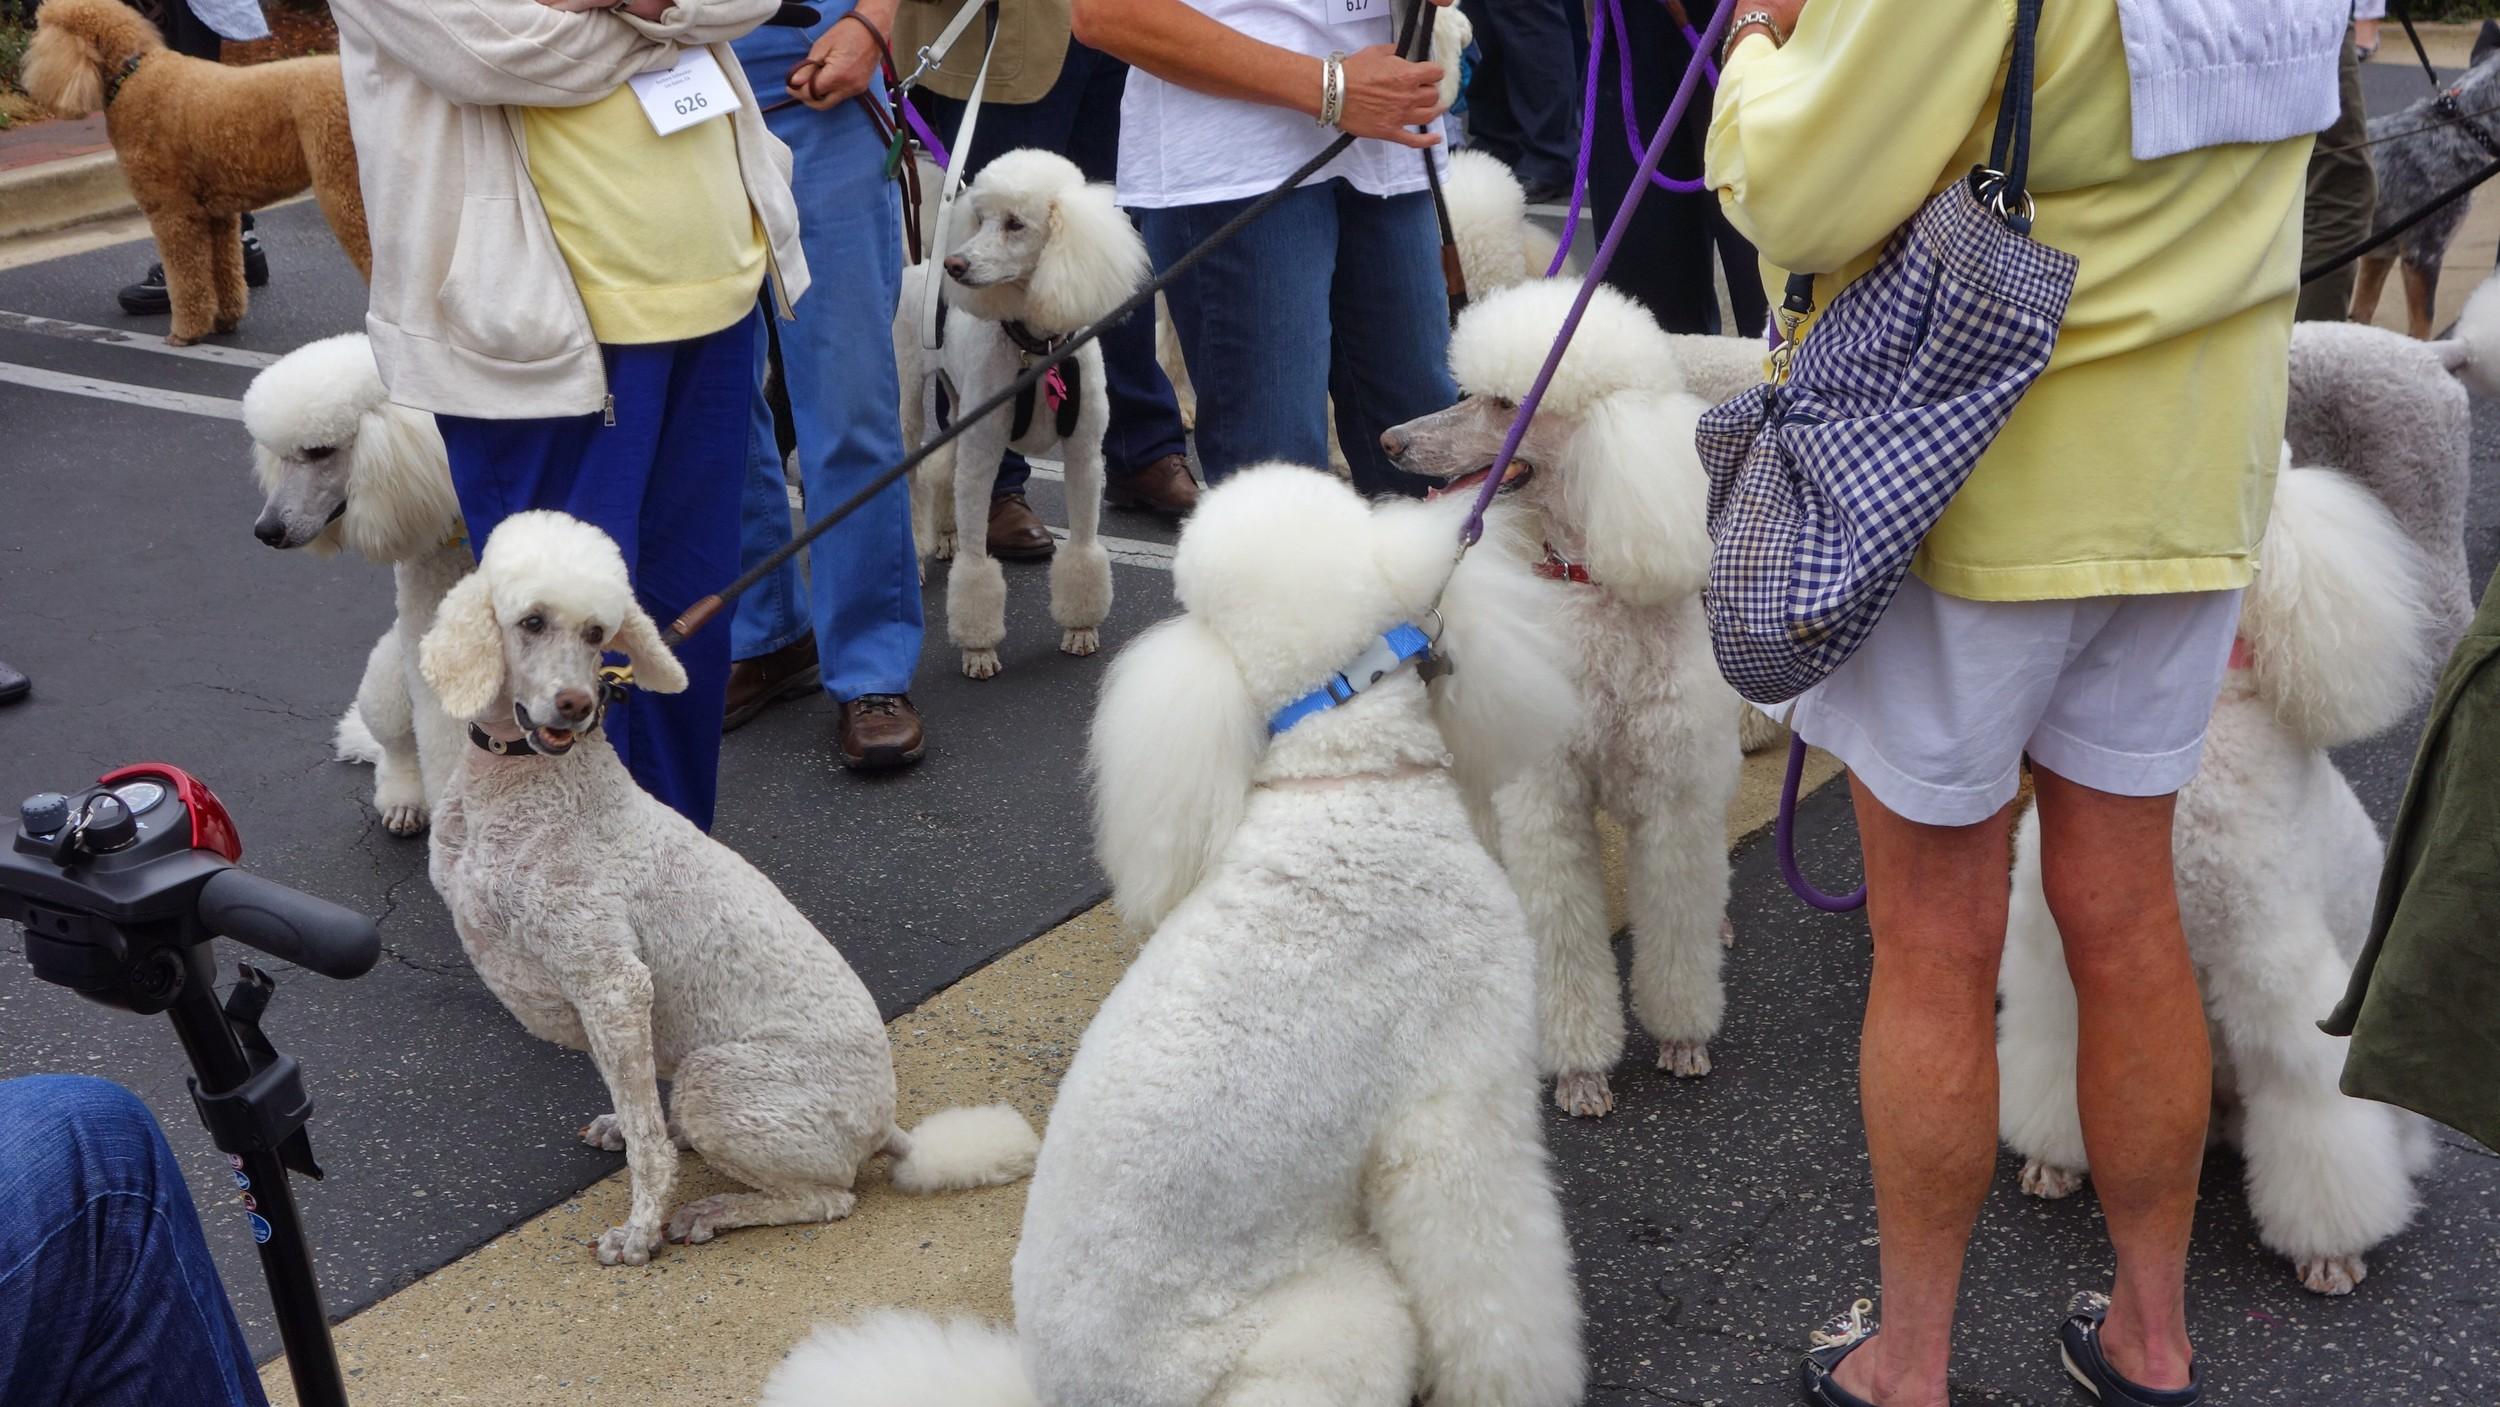 Bobo clones at an insane poodle parade in Carmel, California.    9/2014